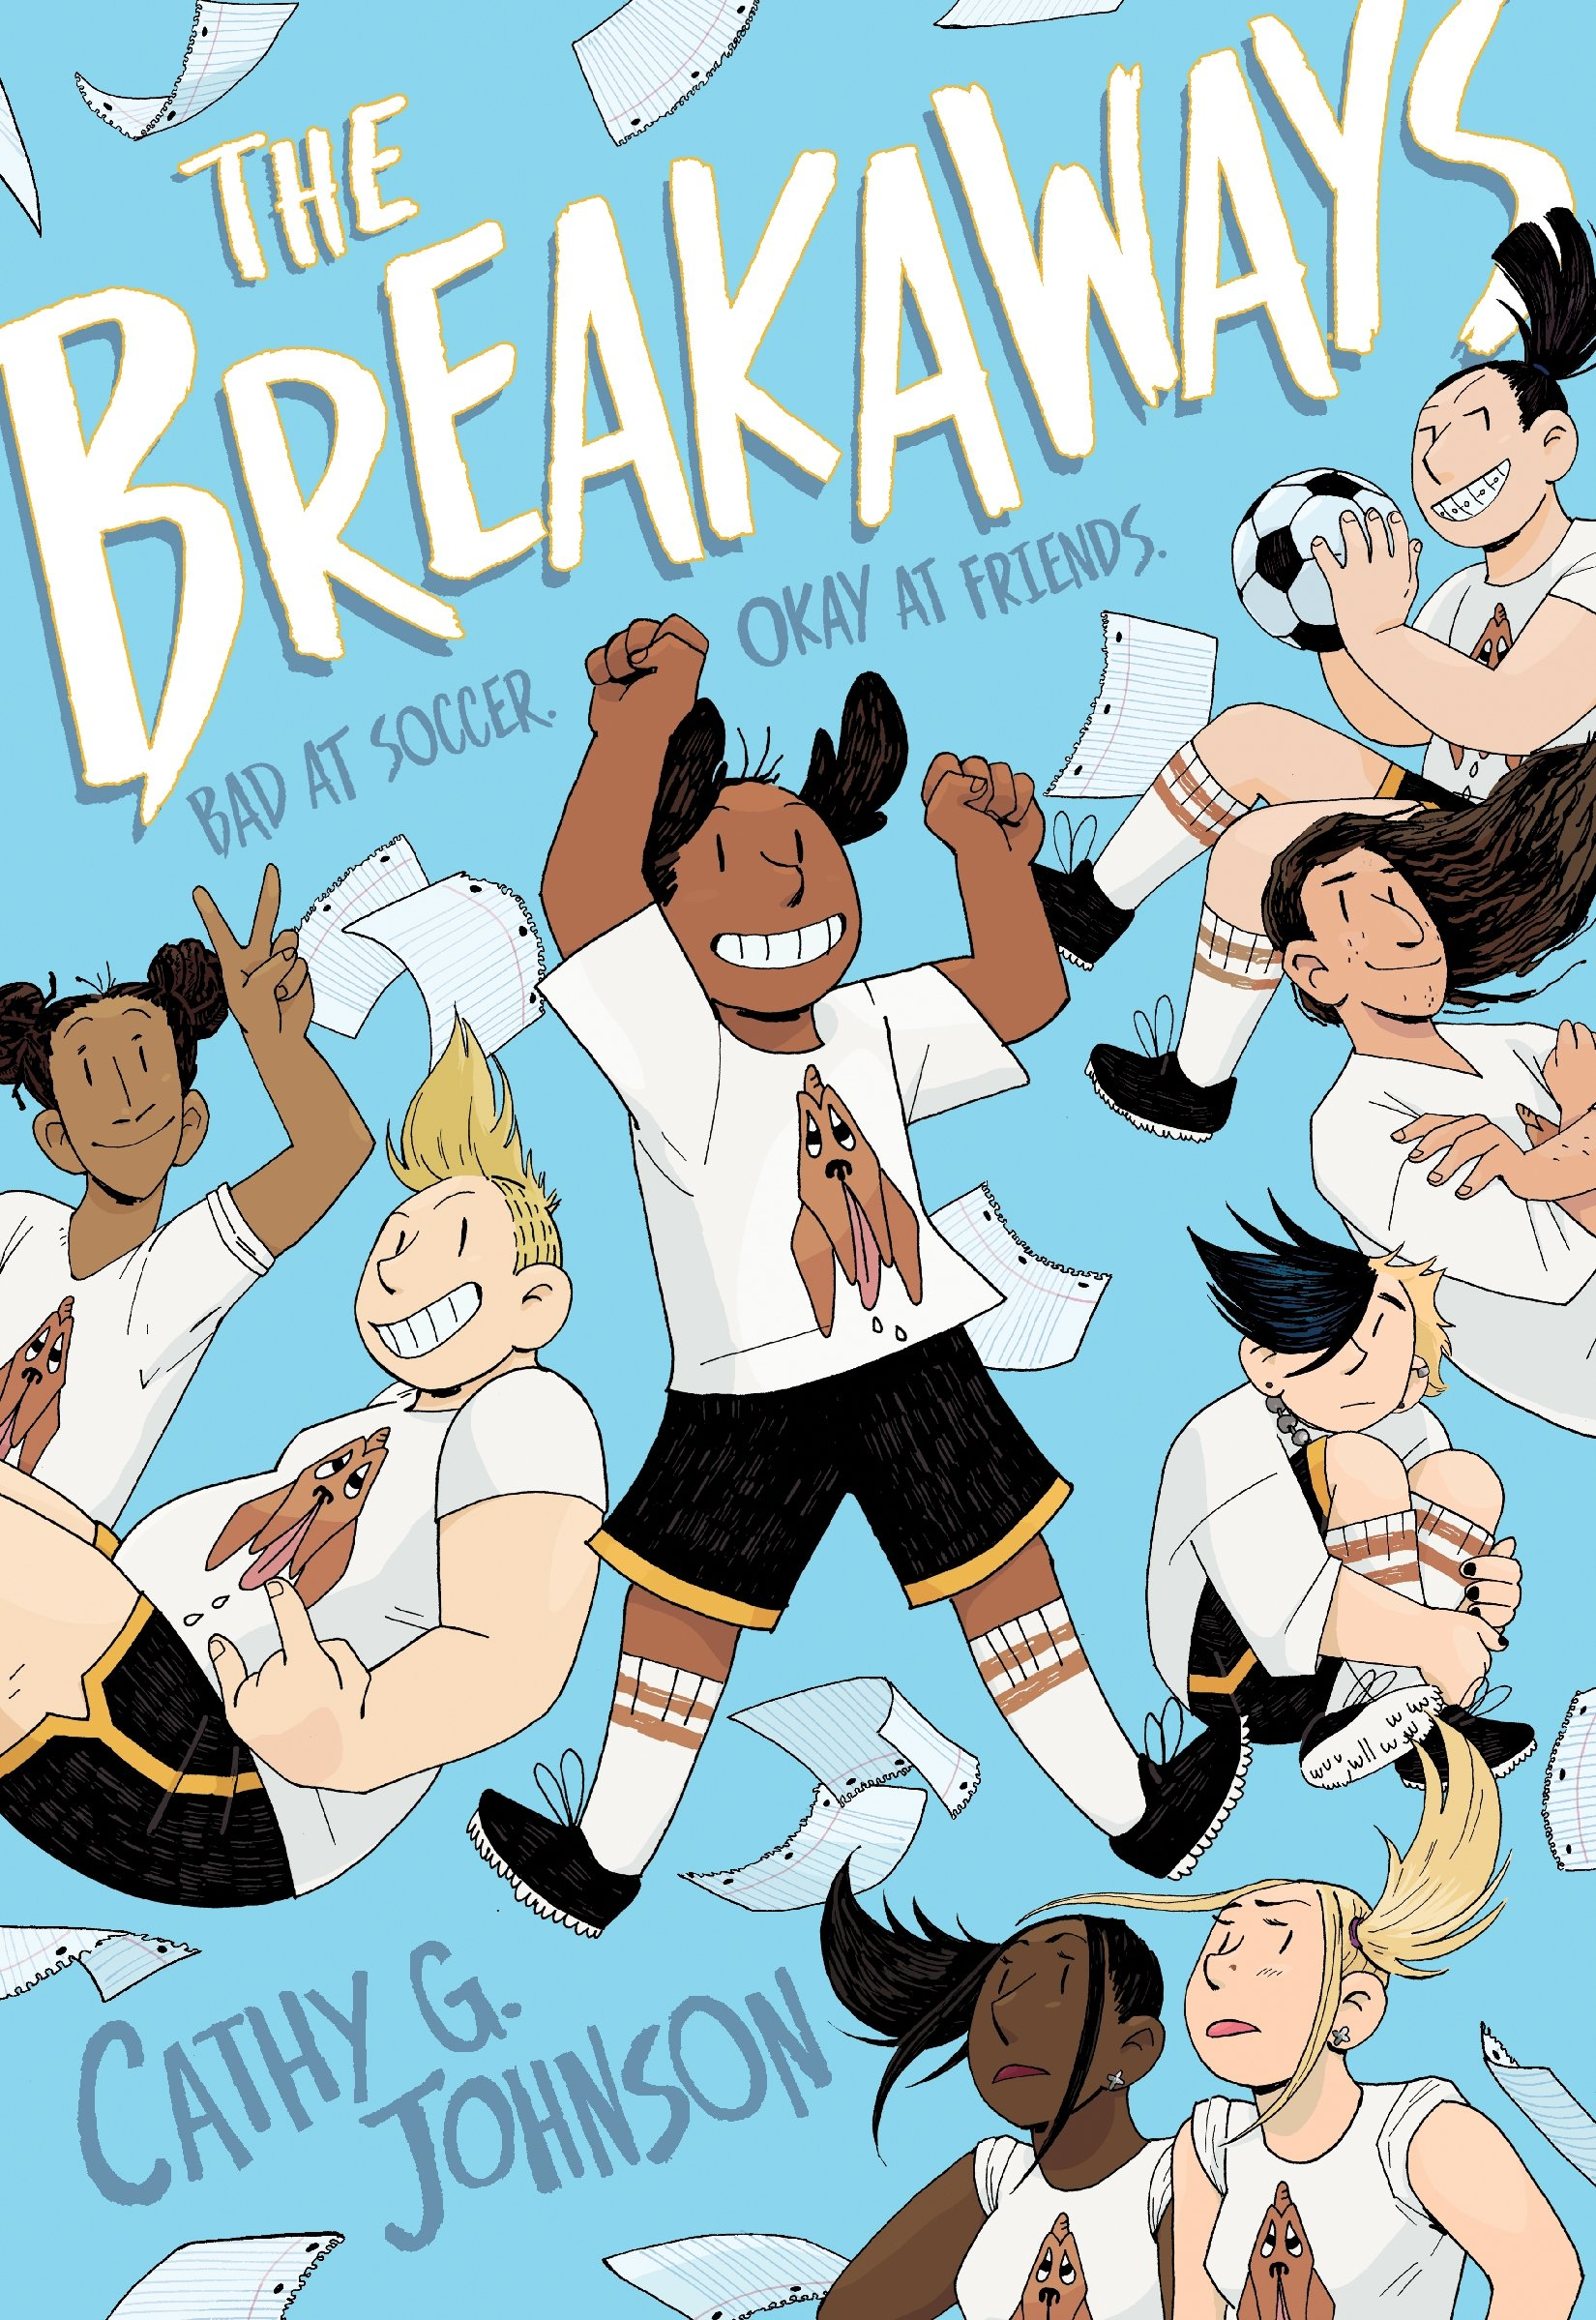 - THE BREAKAWAYS(First Second Books, March 2019)Quiet, sensitive Faith starts middle school already worrying about how she will fit in. To her surprise, Amanda, a popular eighth grader, convinces her to join the school soccer team, the Bloodhounds. Having never played soccer in her life, Faith ends up on the C team, a ragtag group that's way better at drama than at teamwork. Although they are awful at soccer, Faith and her teammates soon form a bond both on and off the soccer field that challenges their notions of loyalty, identity, friendship, and unity.The Breakaways is a portrait of friendship in its many forms, and a raw and beautifully honest look into the lives of a diverse and defiantly independent group of kids learning to make room for themselves in the world.